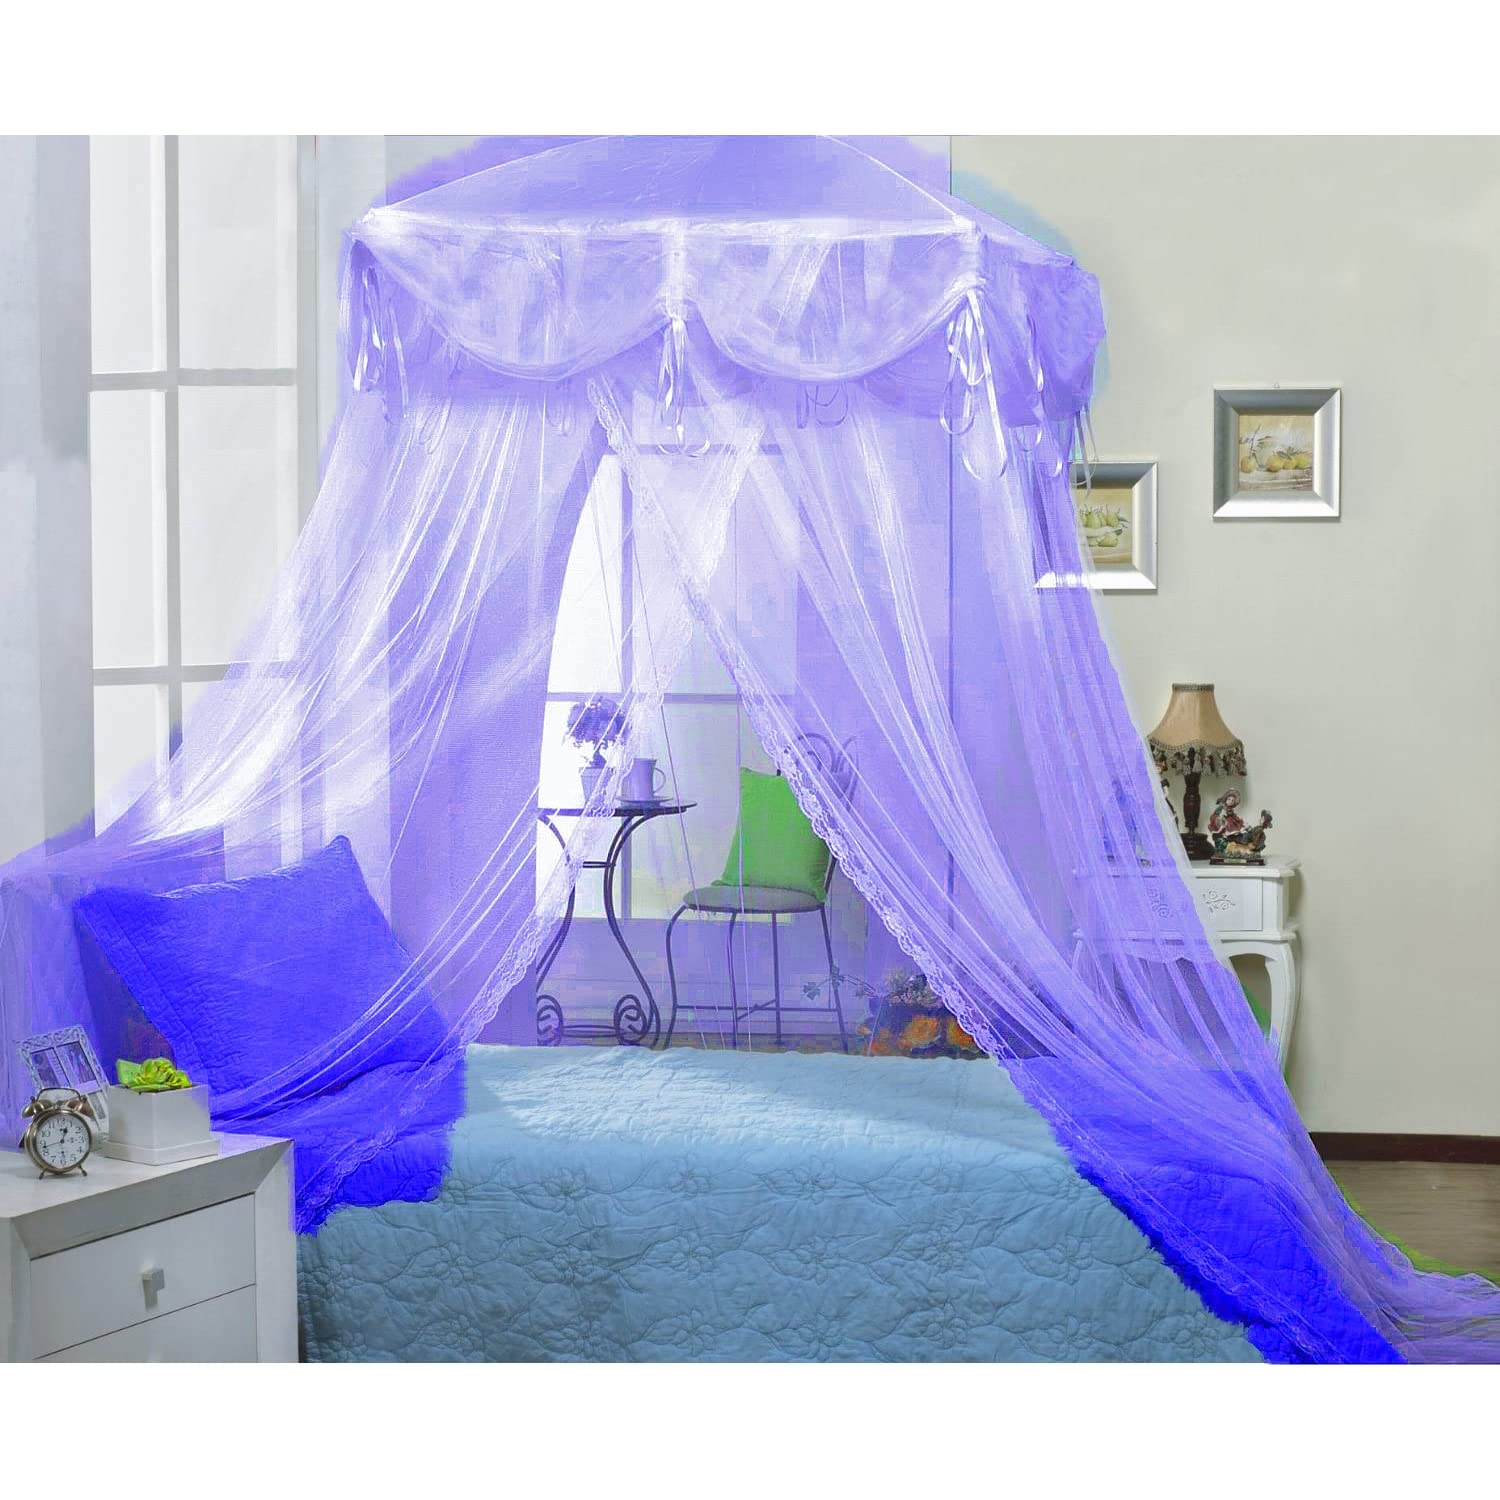 4 Poster Princess Bed Teen Bed Canopy Rainwear